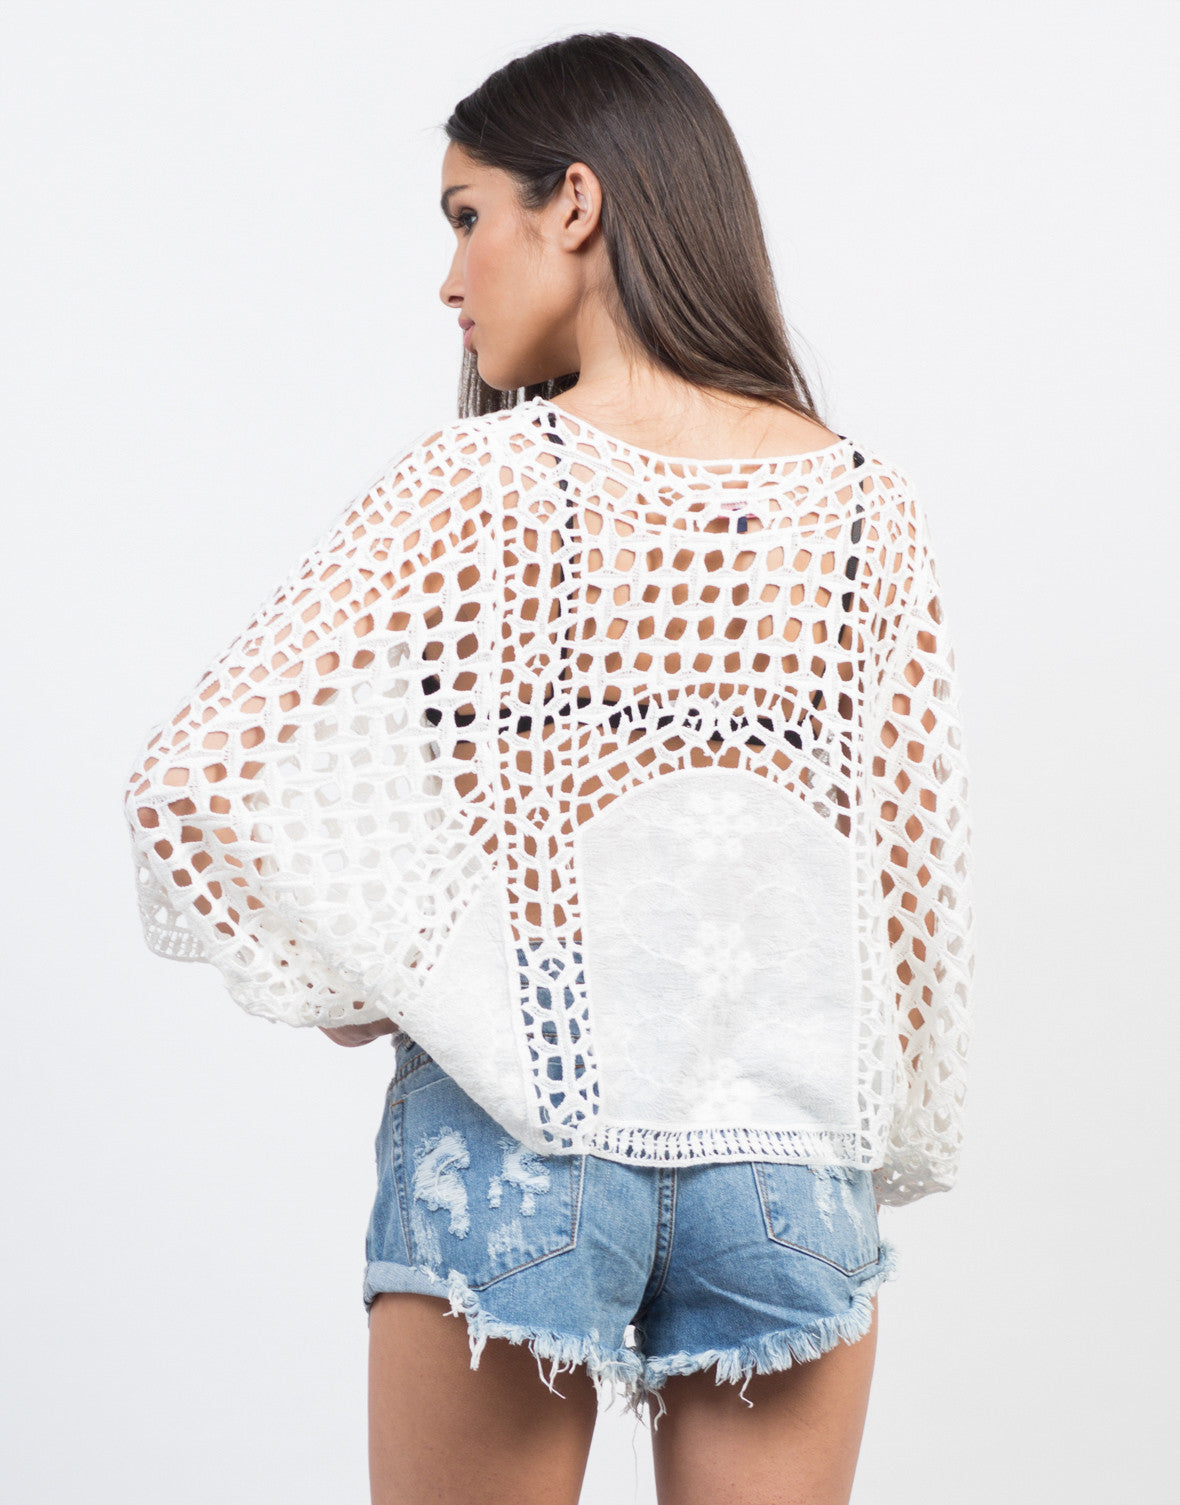 Back View of Floral Embroidered Poncho